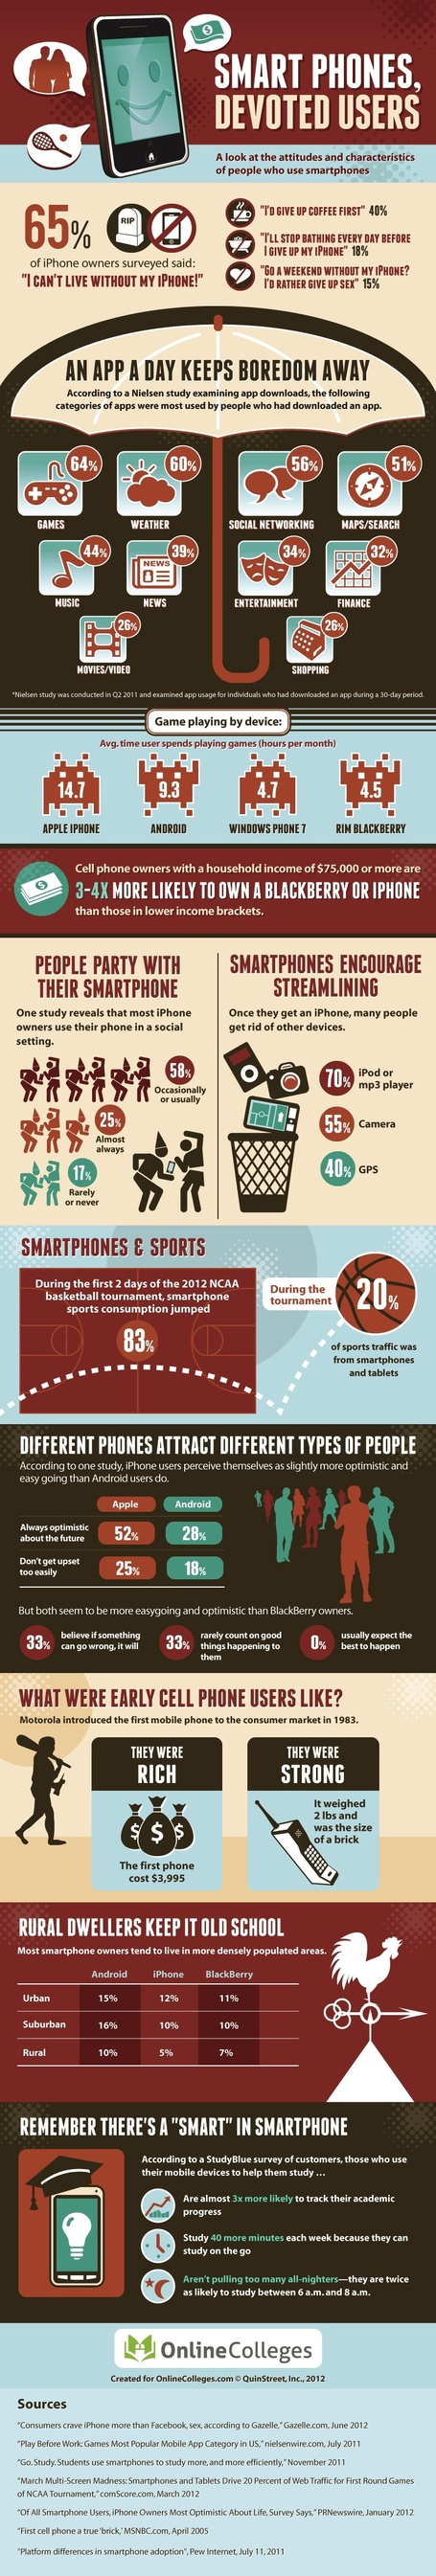 Are You Addicted to Your Smartphone? [INFOGRAPHIC] | omnia mea mecum fero | Scoop.it